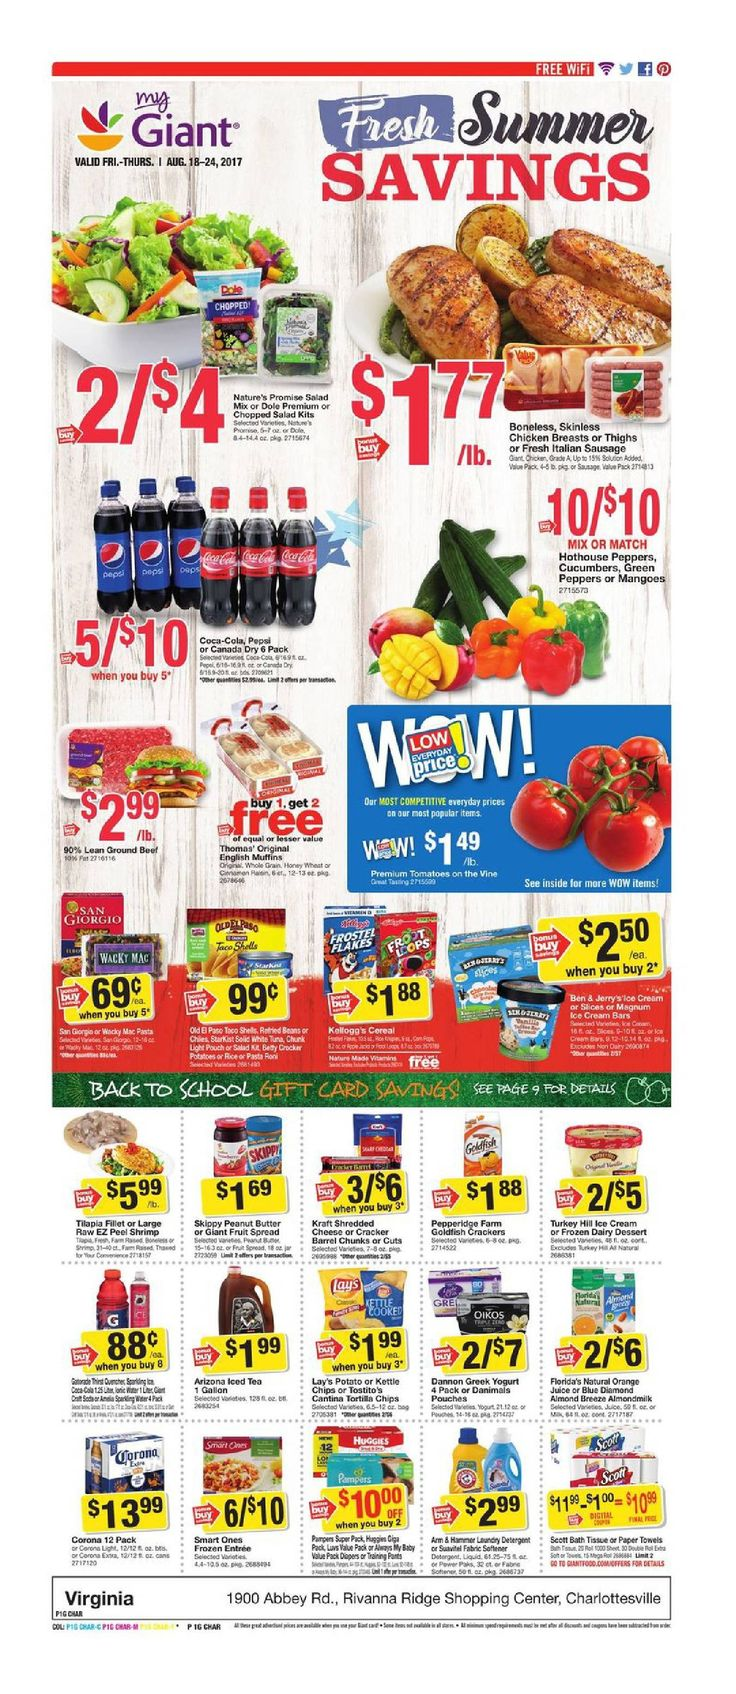 Giant Food Weekly Ad August 18 - 24, 2017 - http://www.olcatalog.com/grocery/giant-food-weekly-ad.html